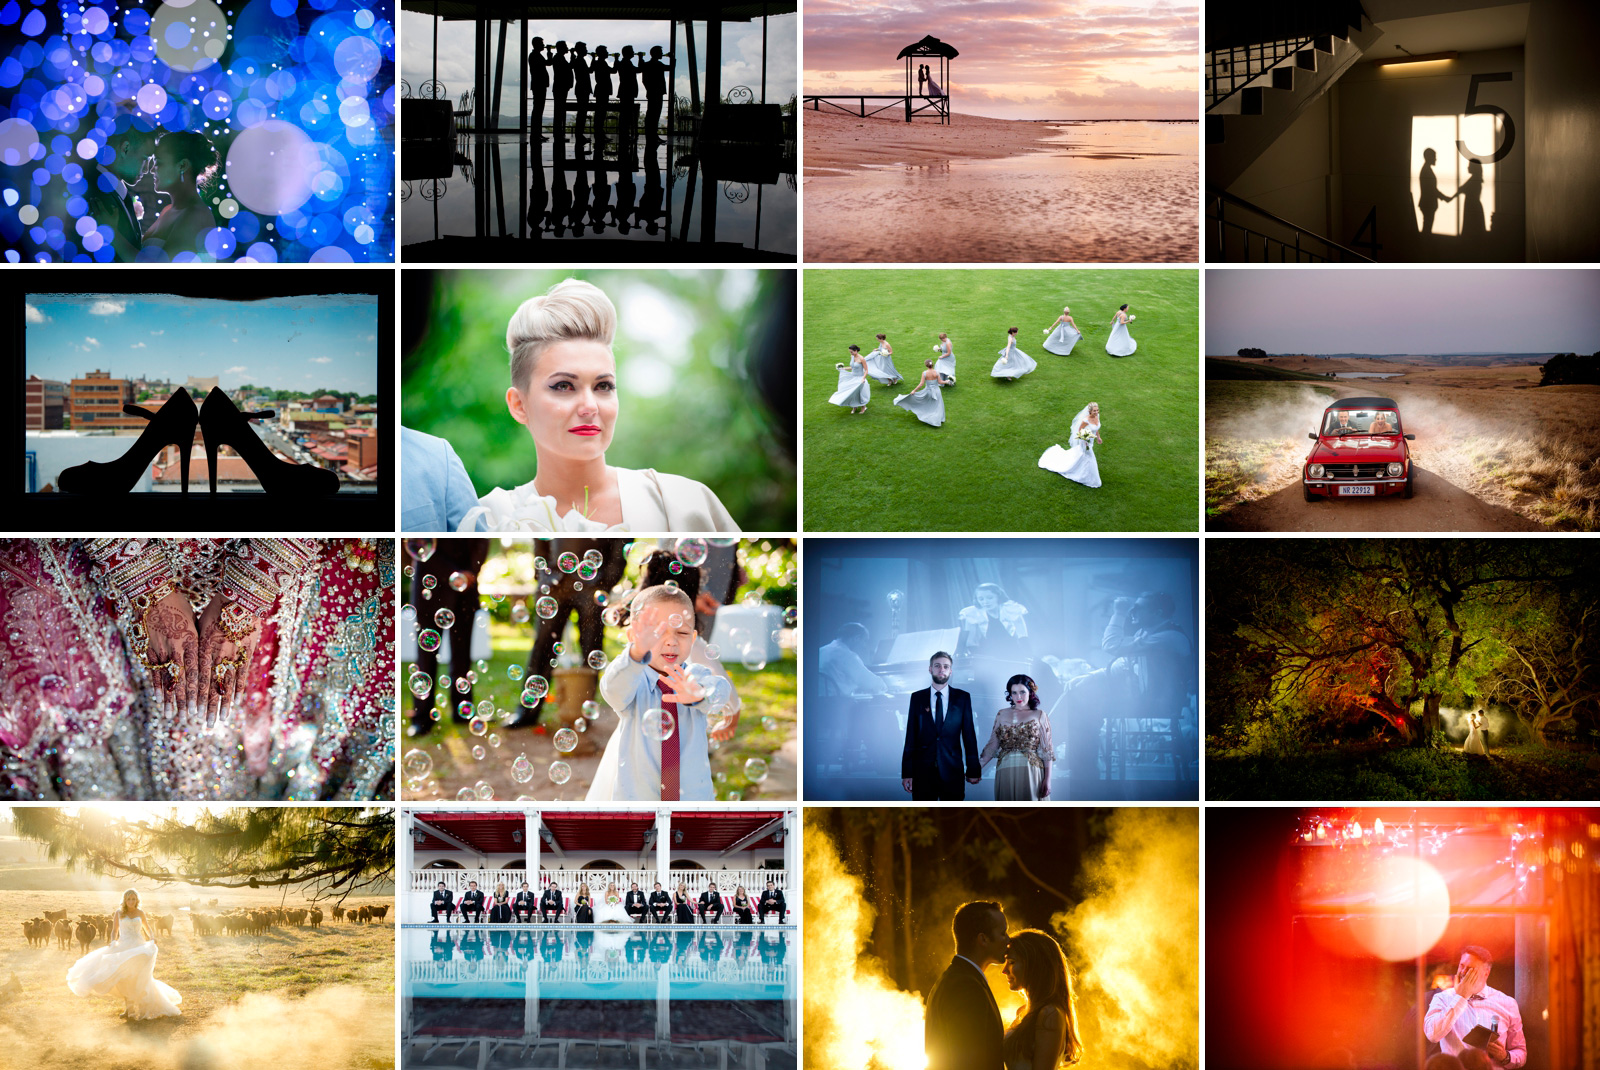 Jacki-Bruniquel-Top-South-African-Wedding-00-Photographer-Best-of-2013-001